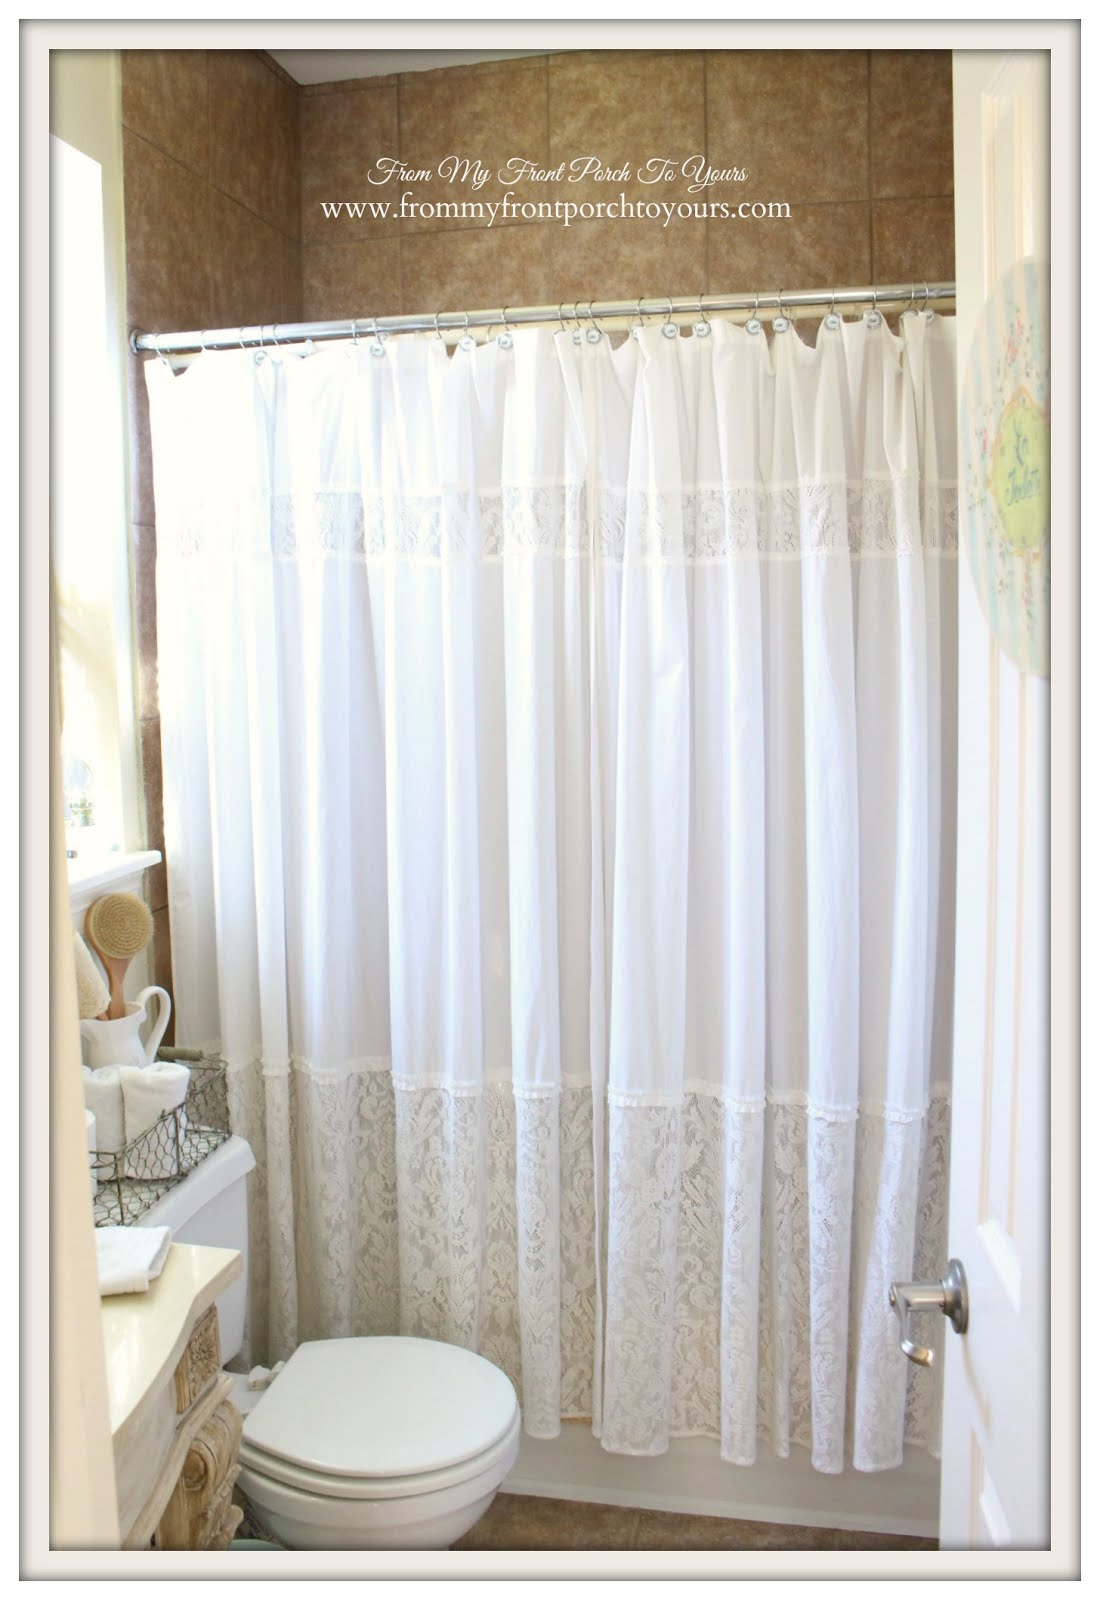 The best way to achieve a fuller shower curtain is to purchase two it